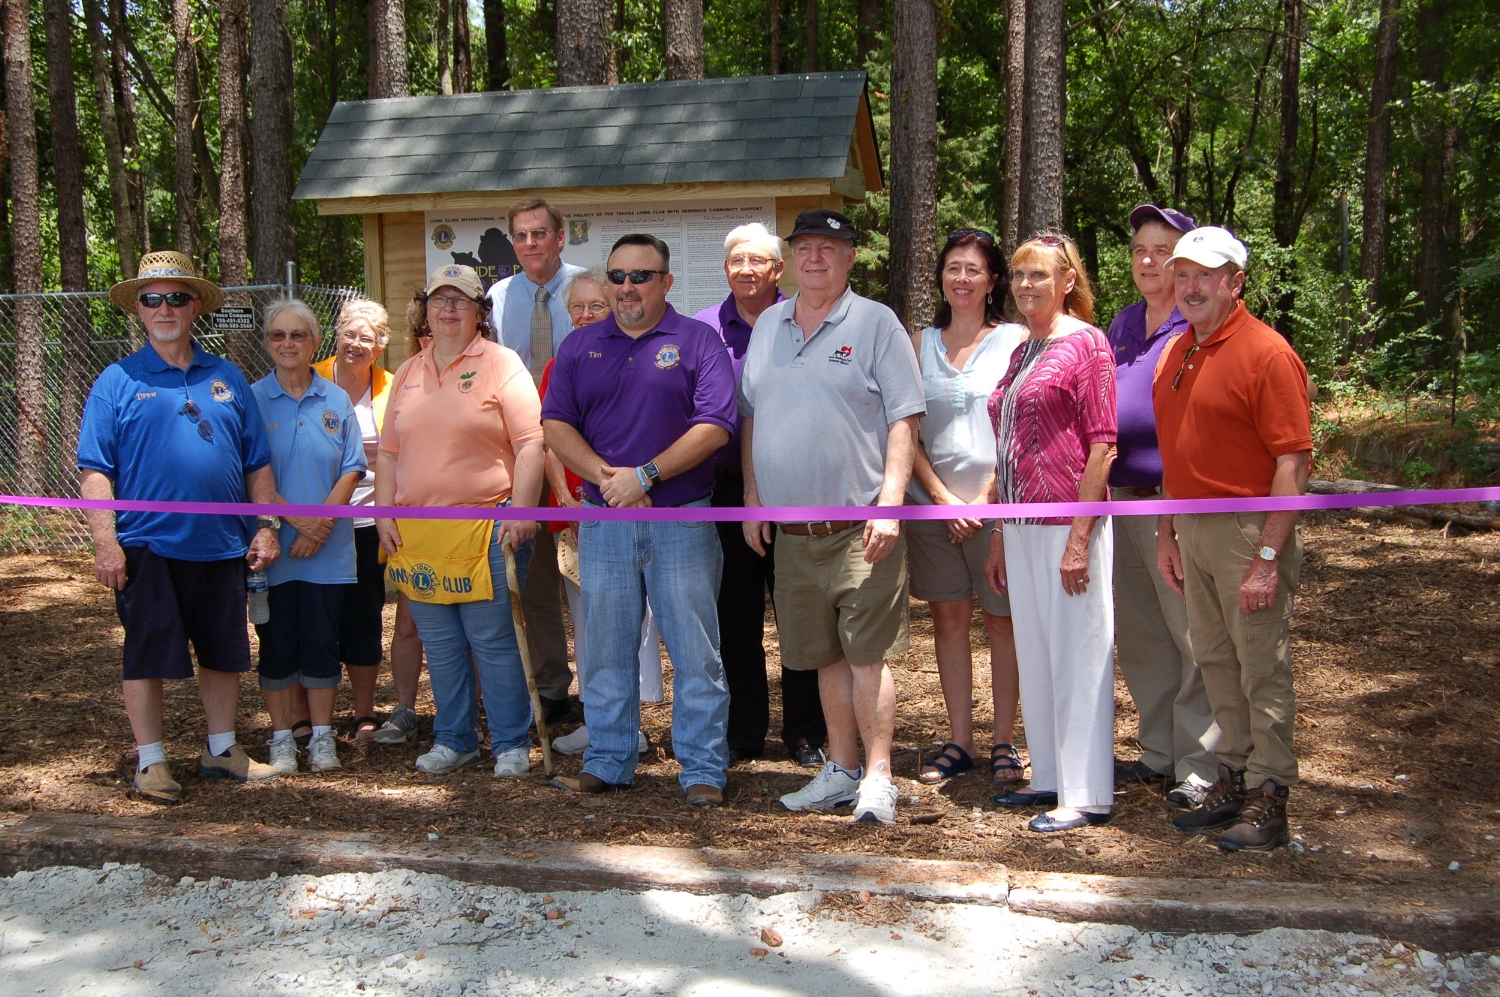 Dedication of Pride Paws Park June 24, 2018, shown are members of the Toccoa Lions Club, members of the Toccoa-Stpehens County Humane Shelter, and government officials